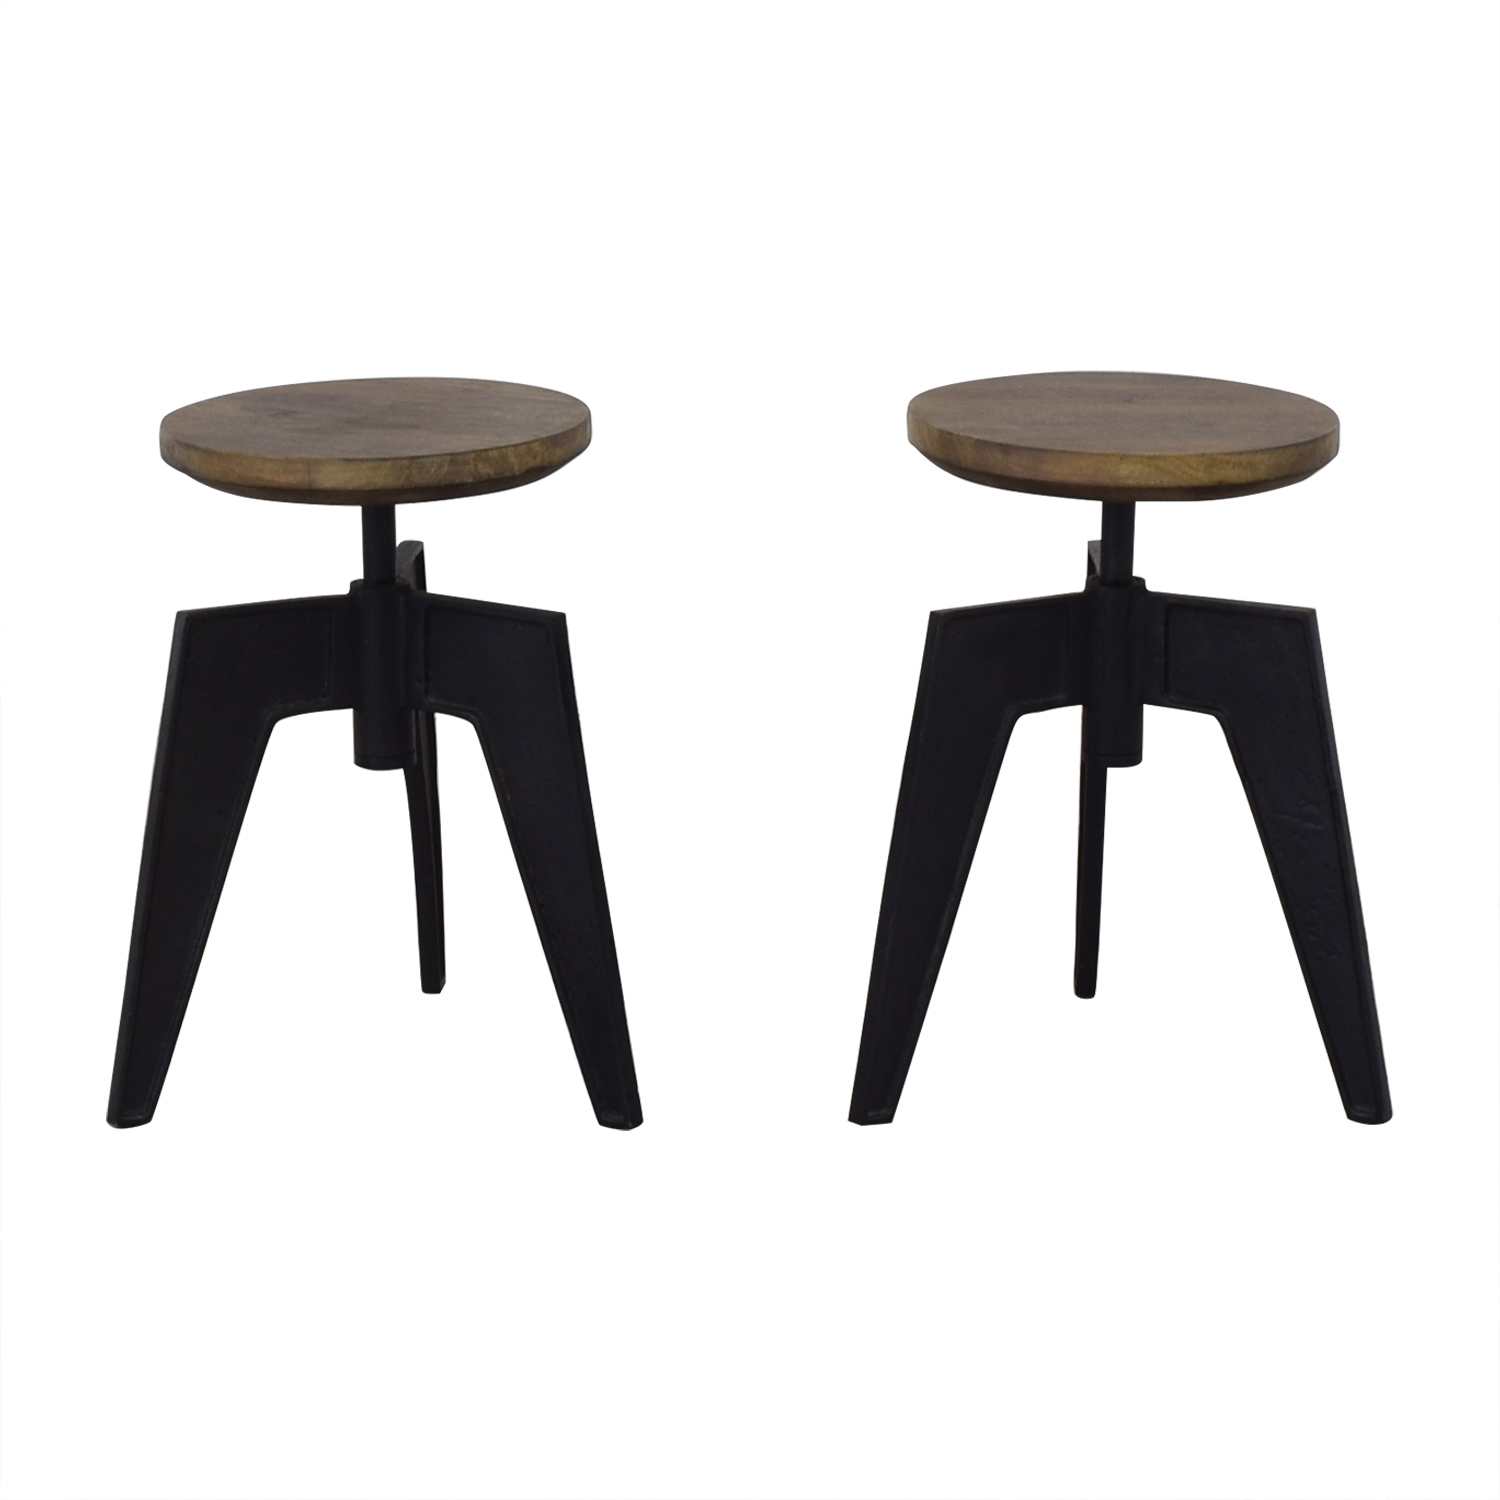 CB2 CB2 Contact Bar Stools on sale